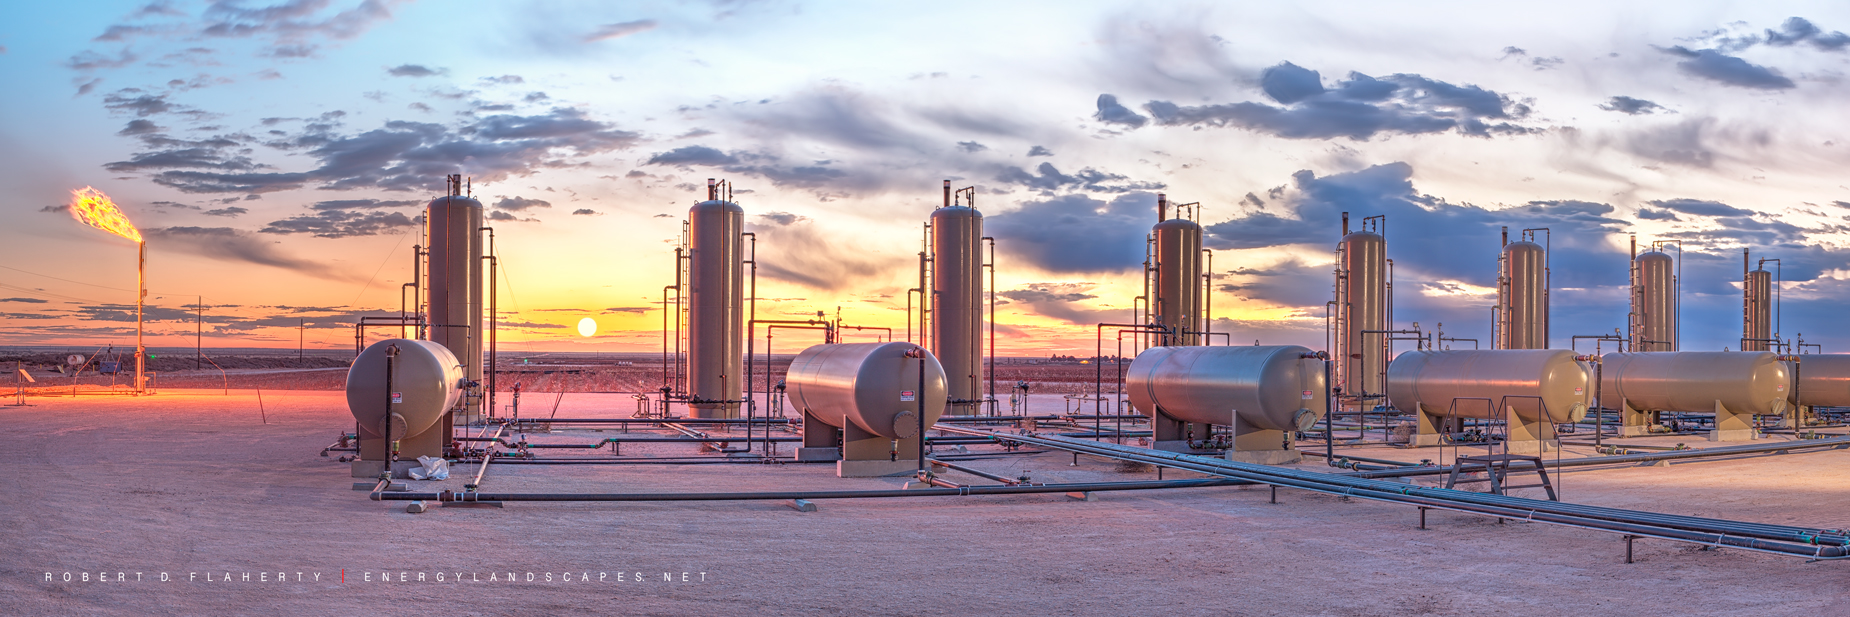 Permian Basin, Texas, produced water, sunrise, panorama, high resolution, mural, fine art mural, San Andres, San Andres Formation, Seminole, separator battery, Winter, photo